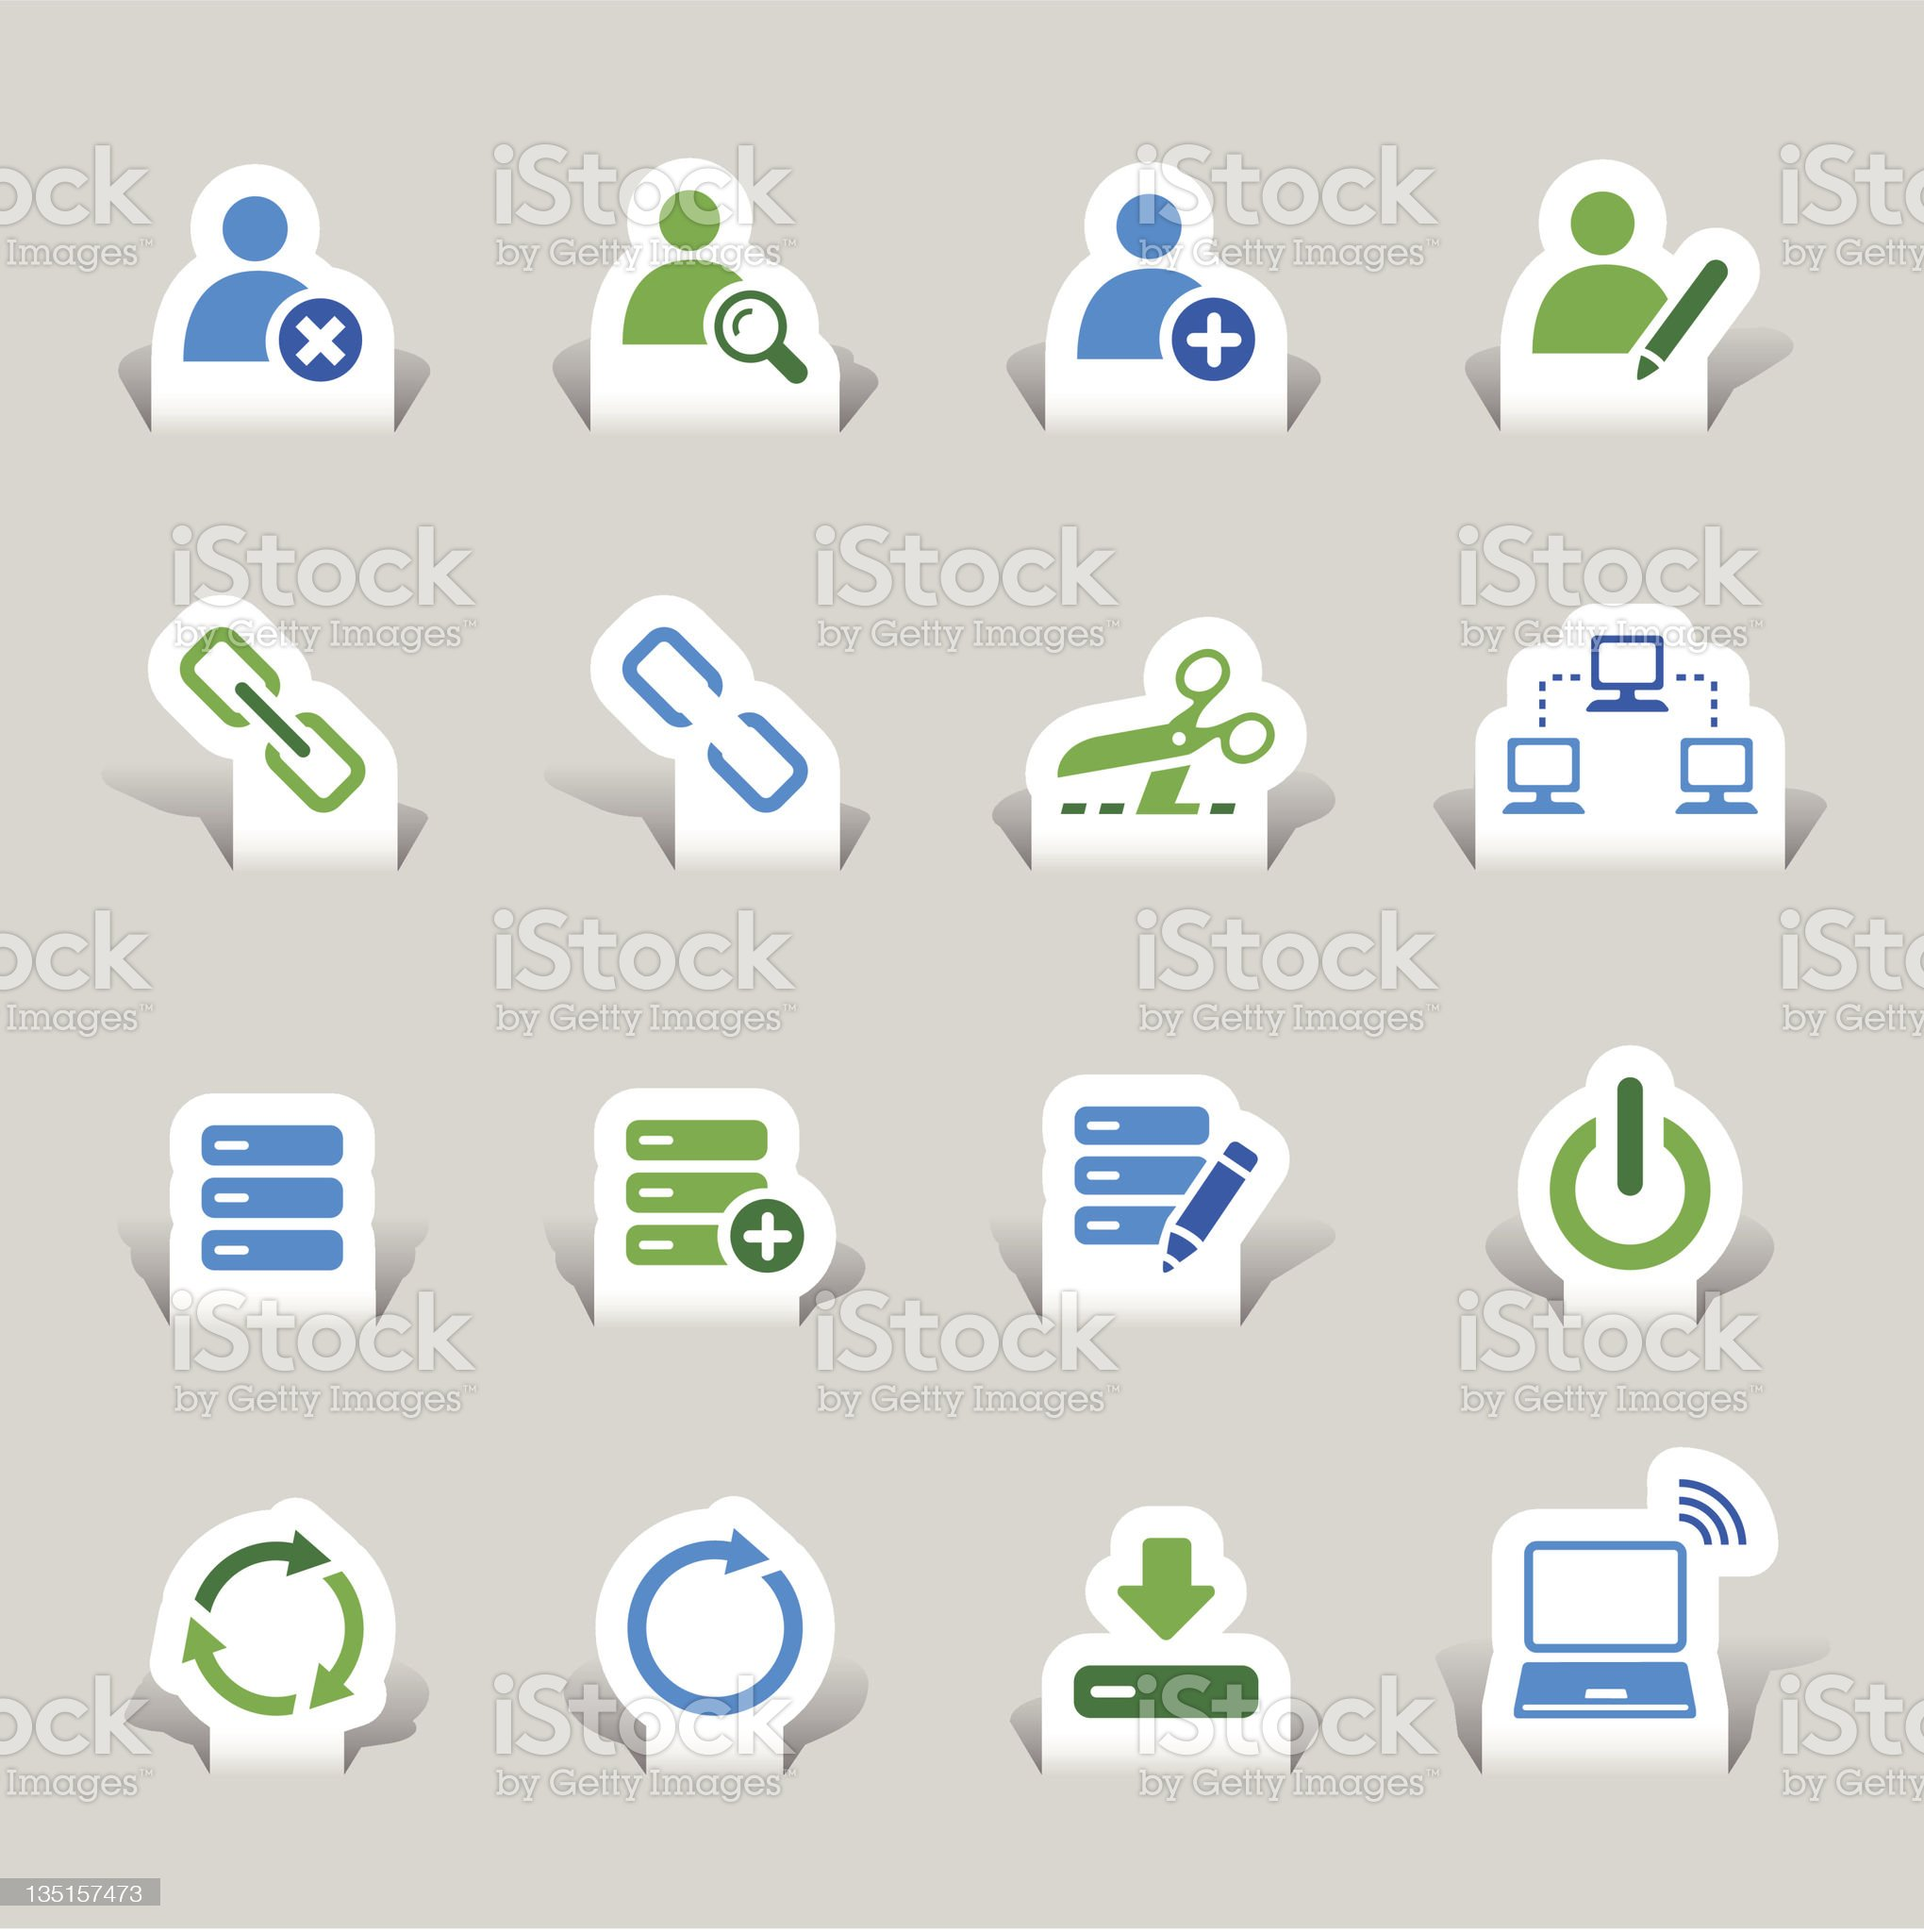 Colored website and internet icons royalty-free stock vector art